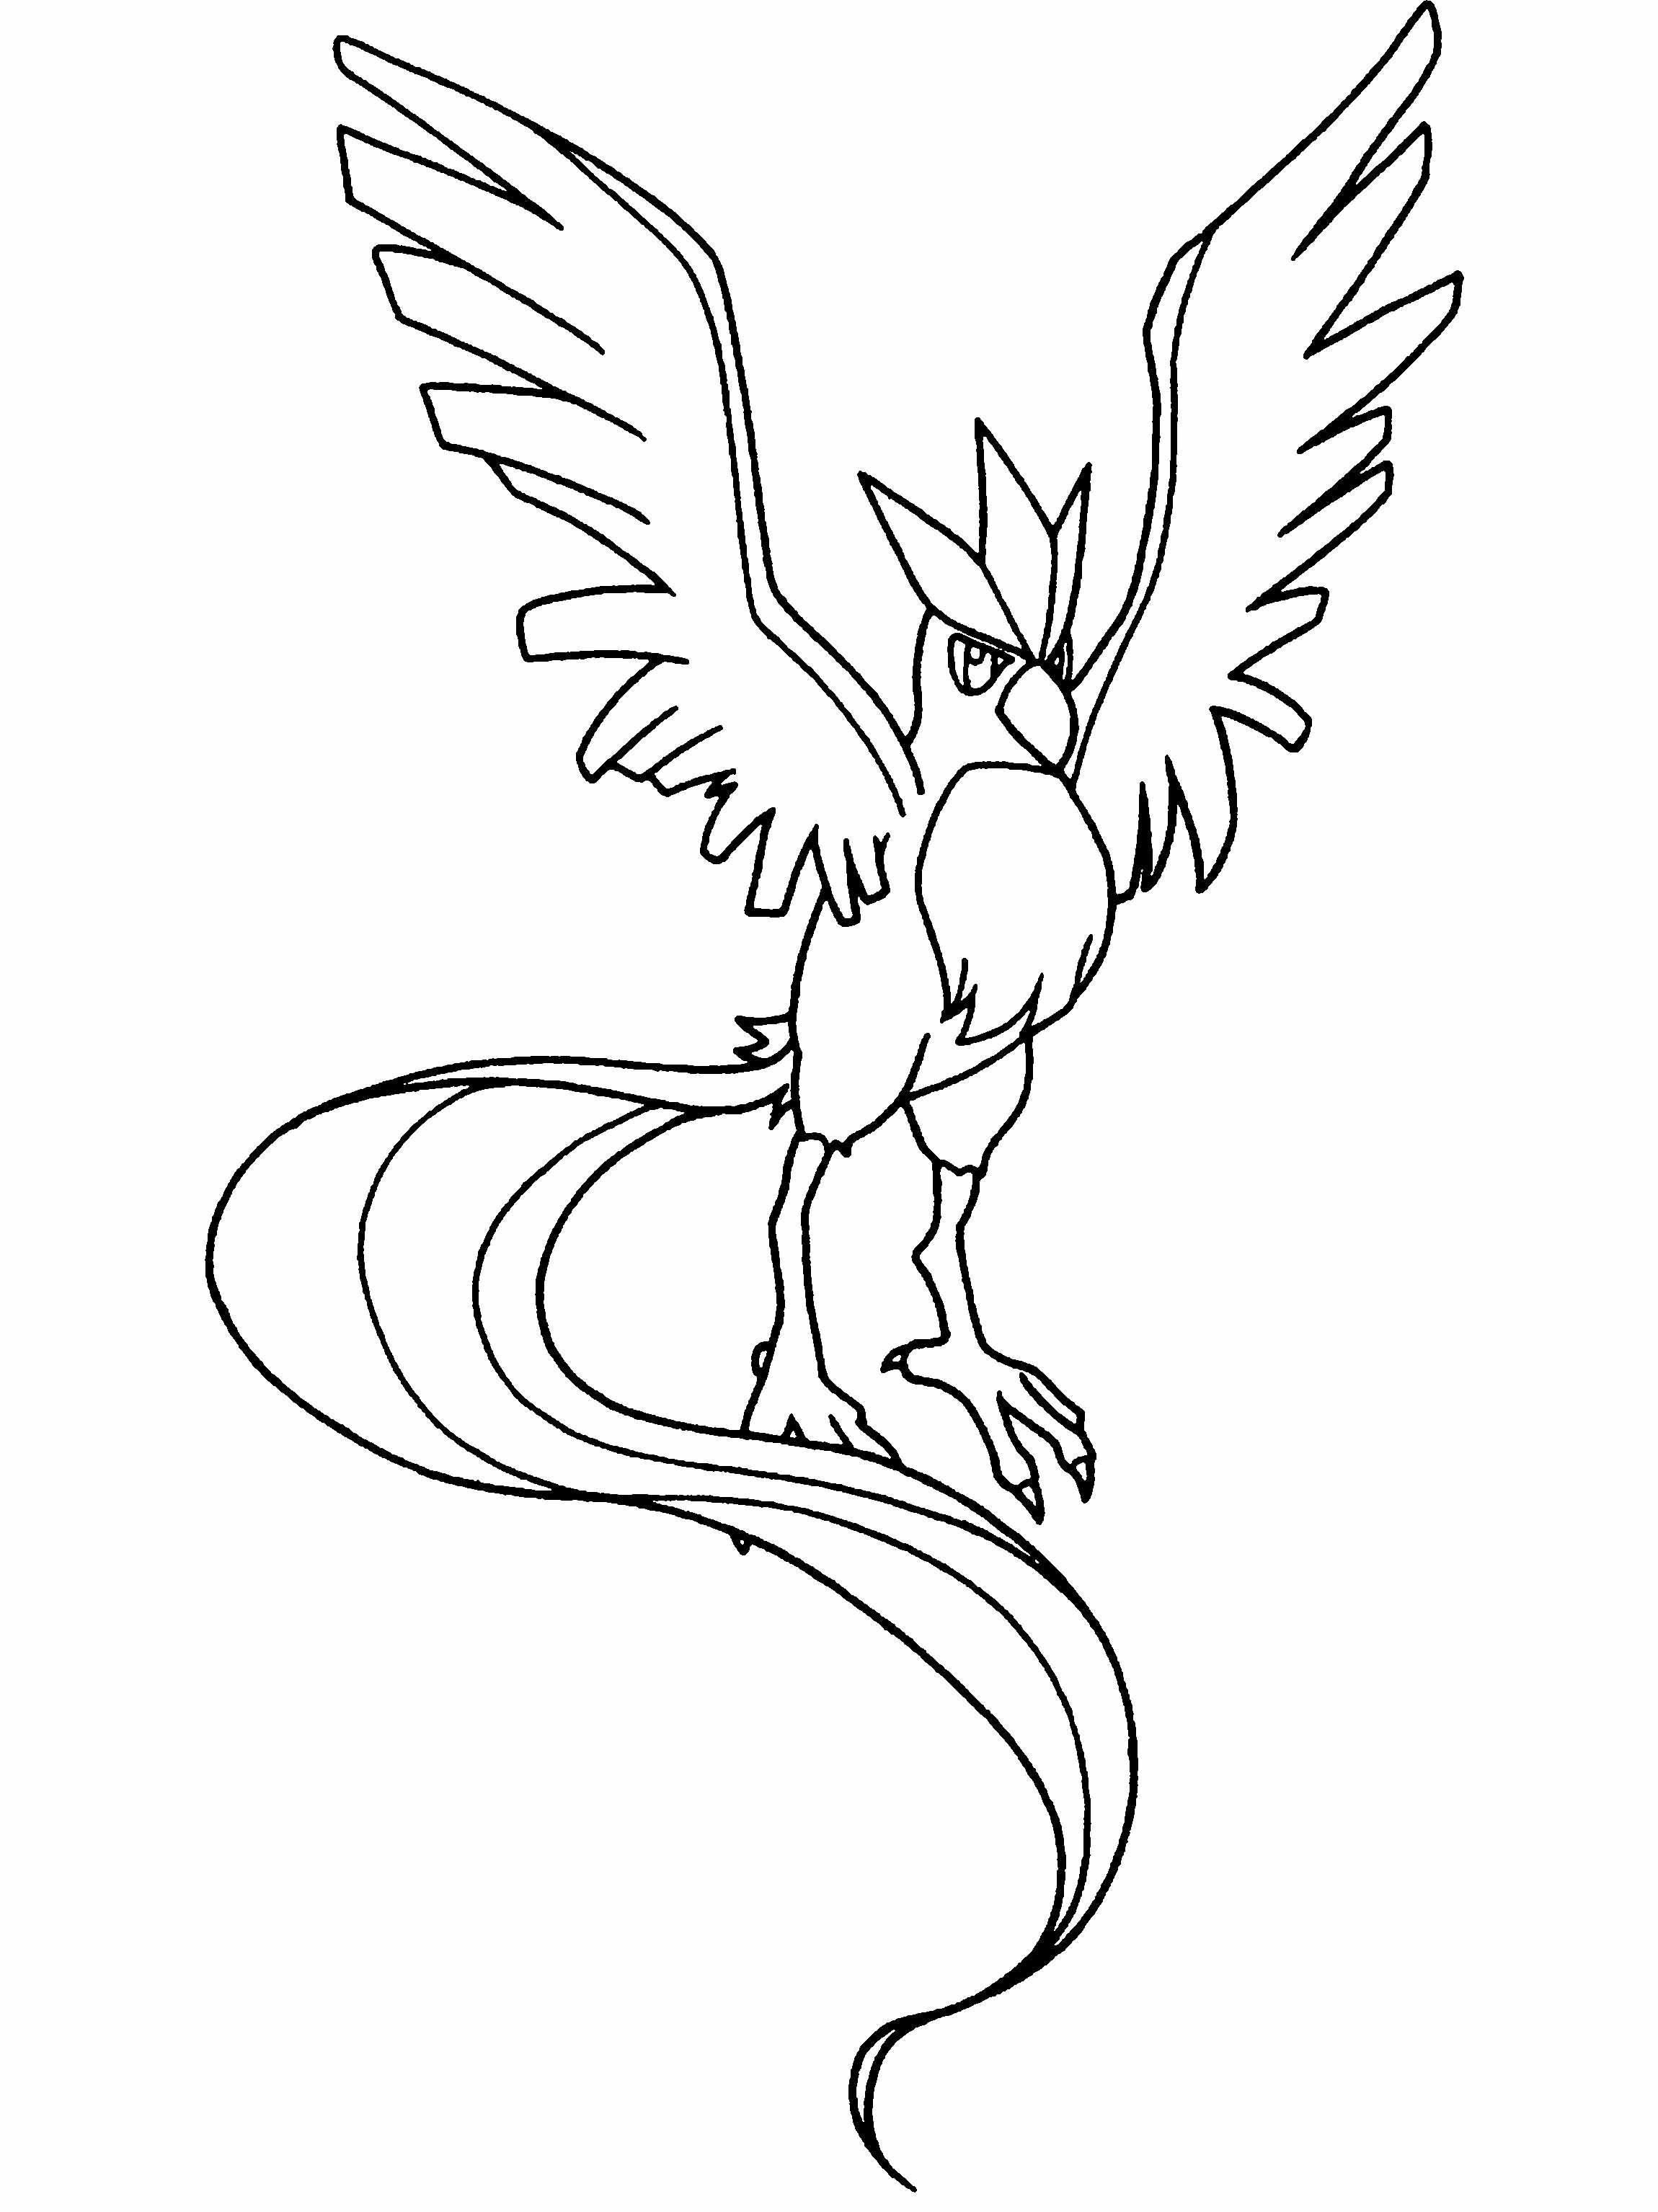 Pokemon Ausmalbilder Mega Entwicklung : A Great Bird Pokemon Coloring Pages Drawing Pinterest